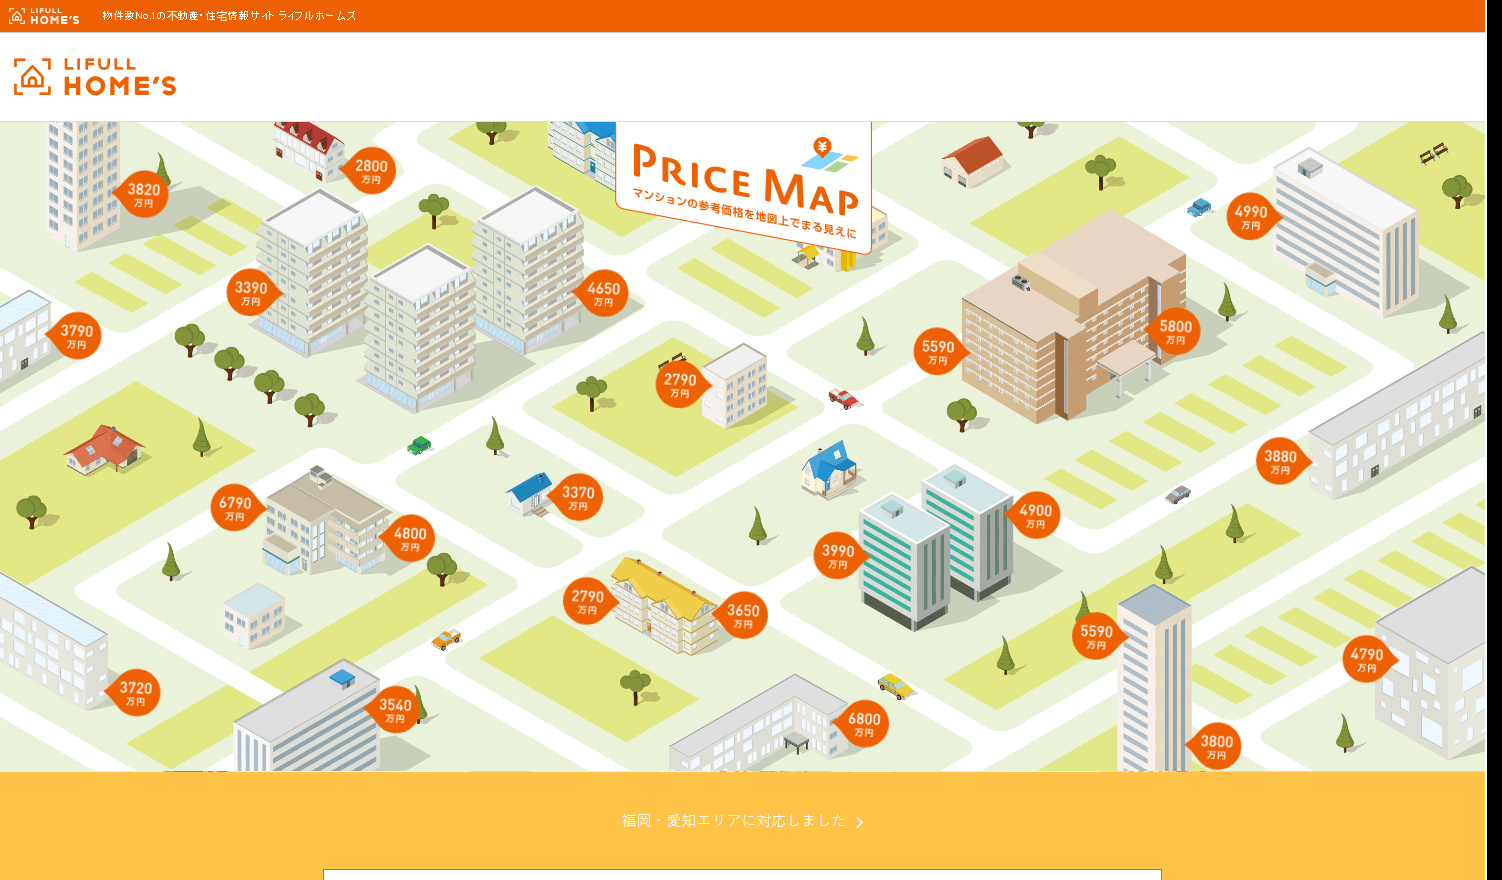 LIFULL HOME'S「PRICE MAP」